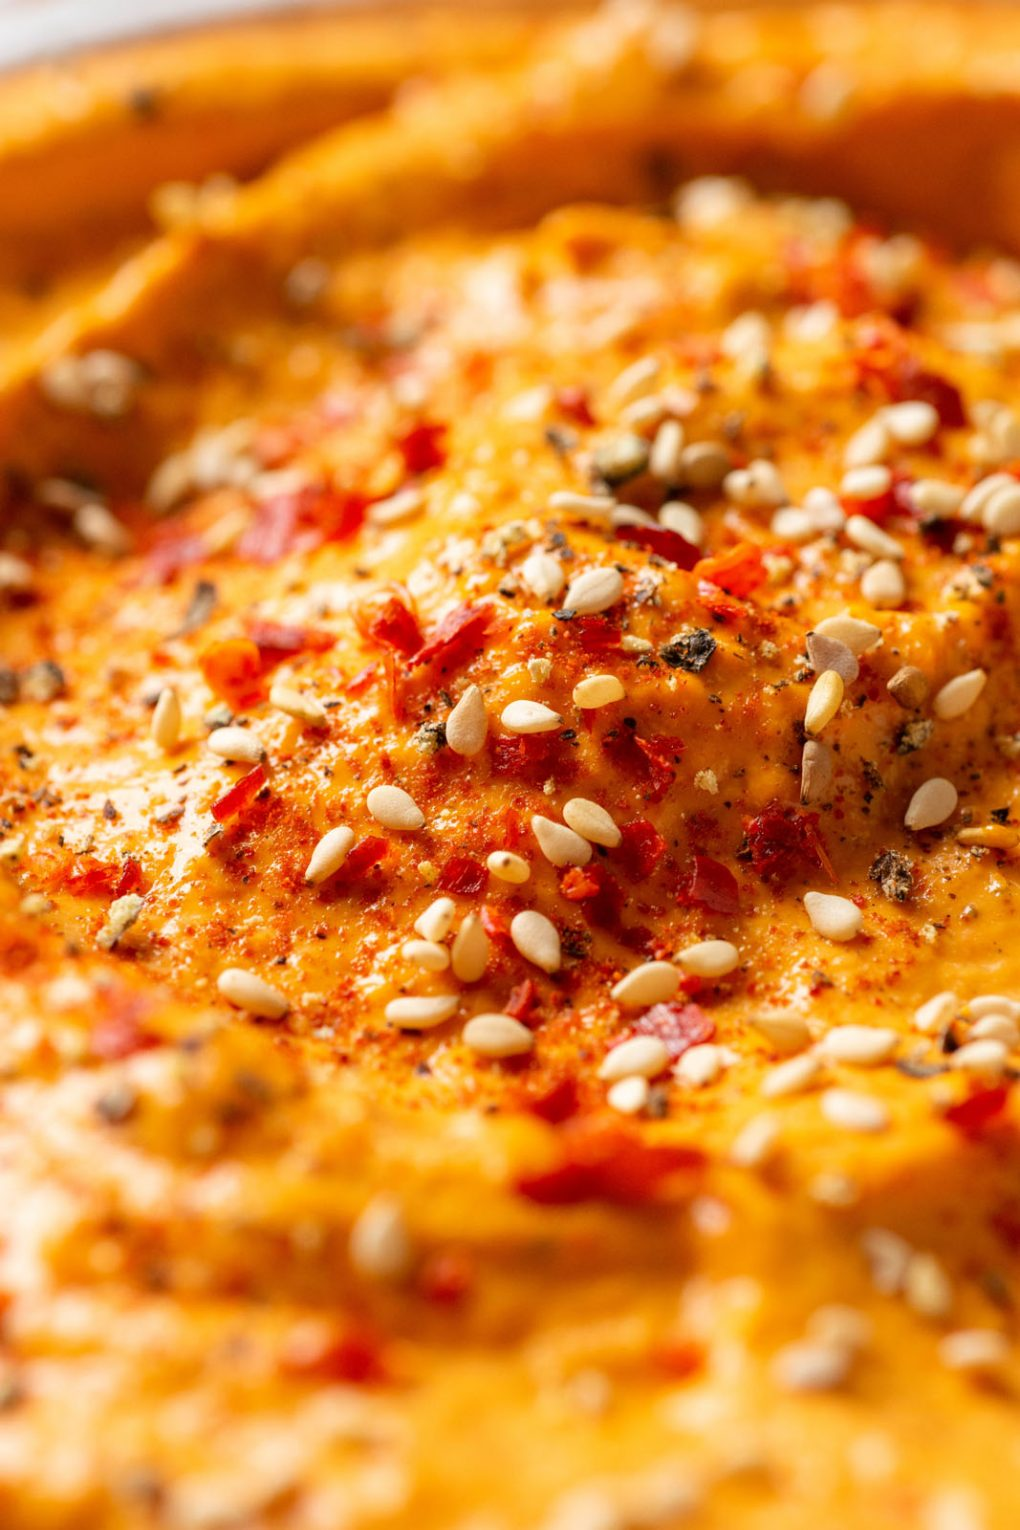 Macro close up shot of red pepper dip, sprinkled with sesame seeds and chili flakes.